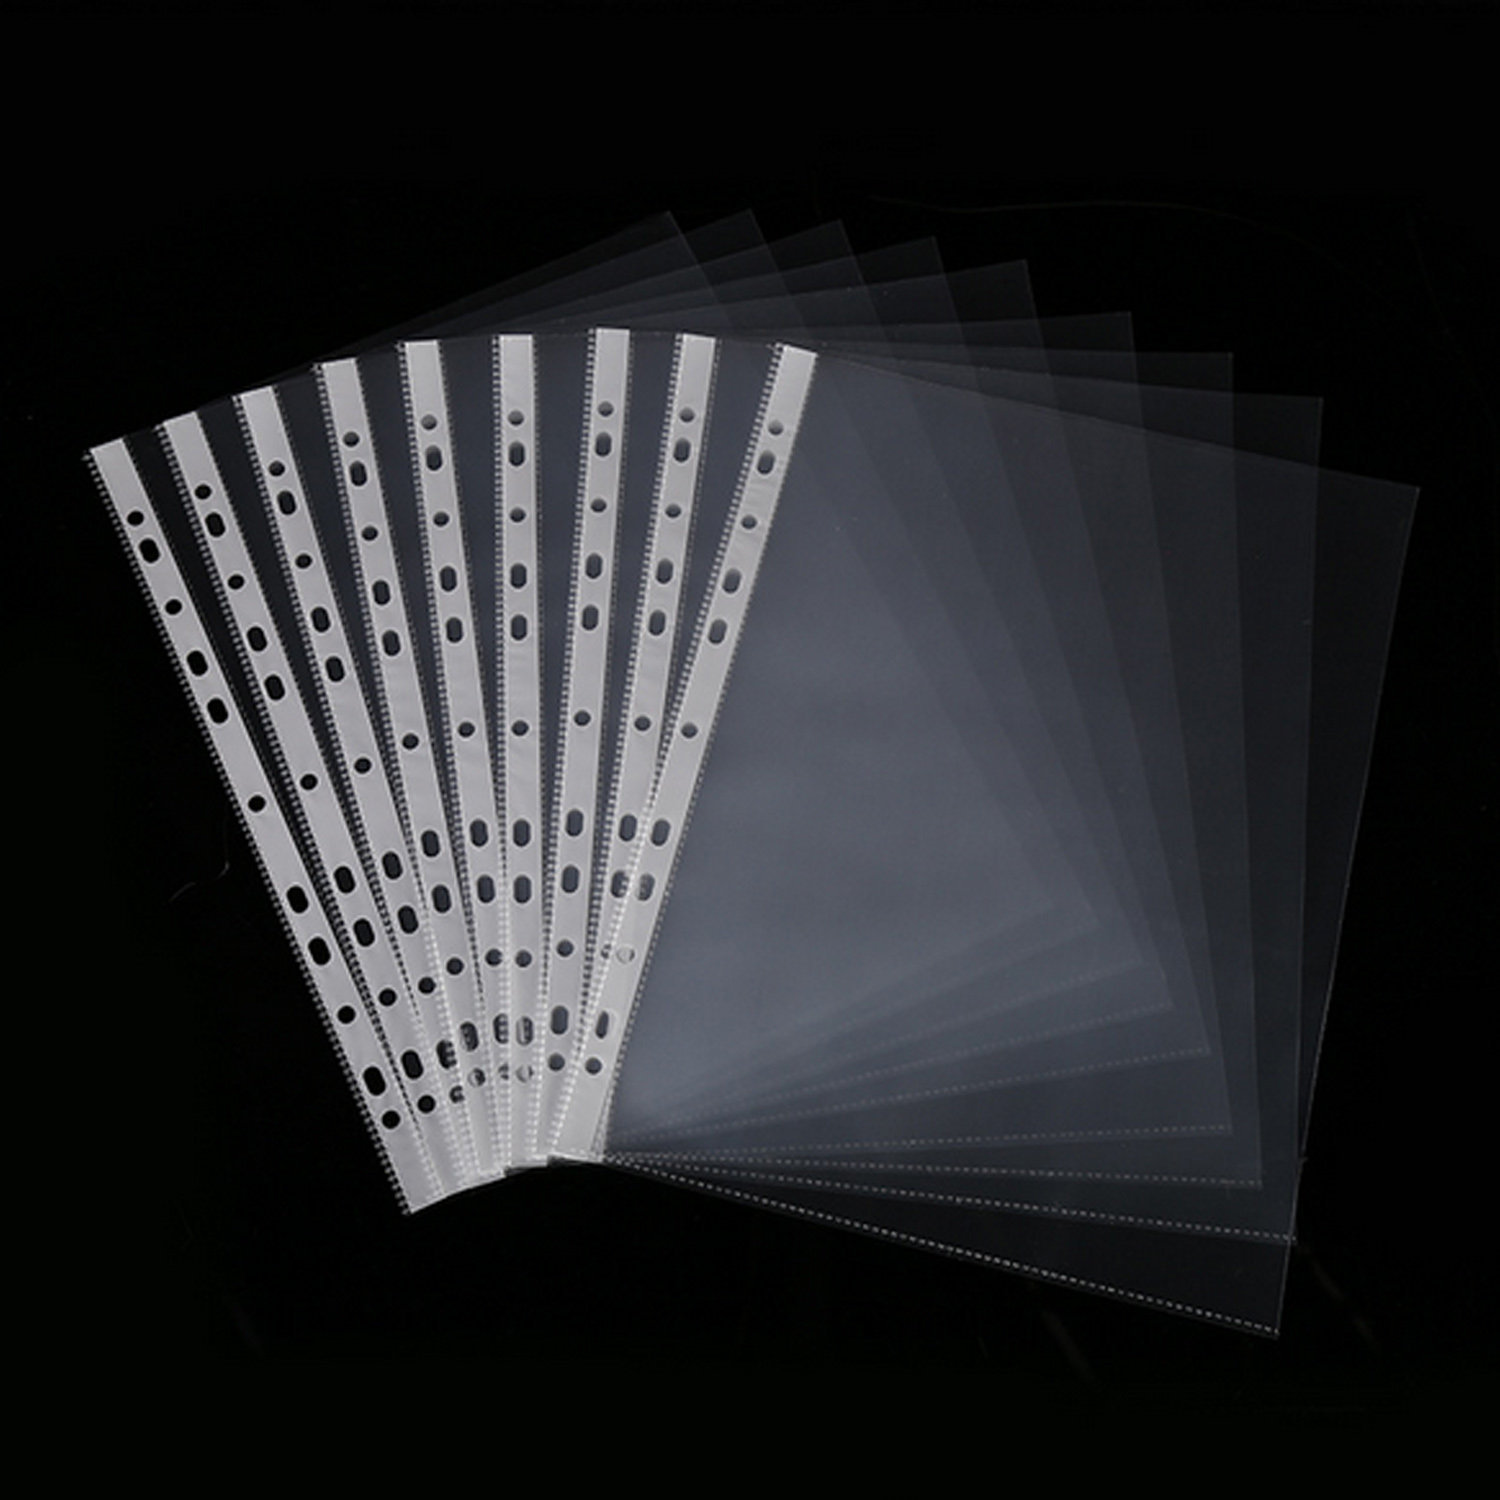 100PCS A4 Size Multipurpose A4 File Page 11-Hole Loose Leaf Clear PVC Sheet Page Protectors For Documents Files Paper Organizer